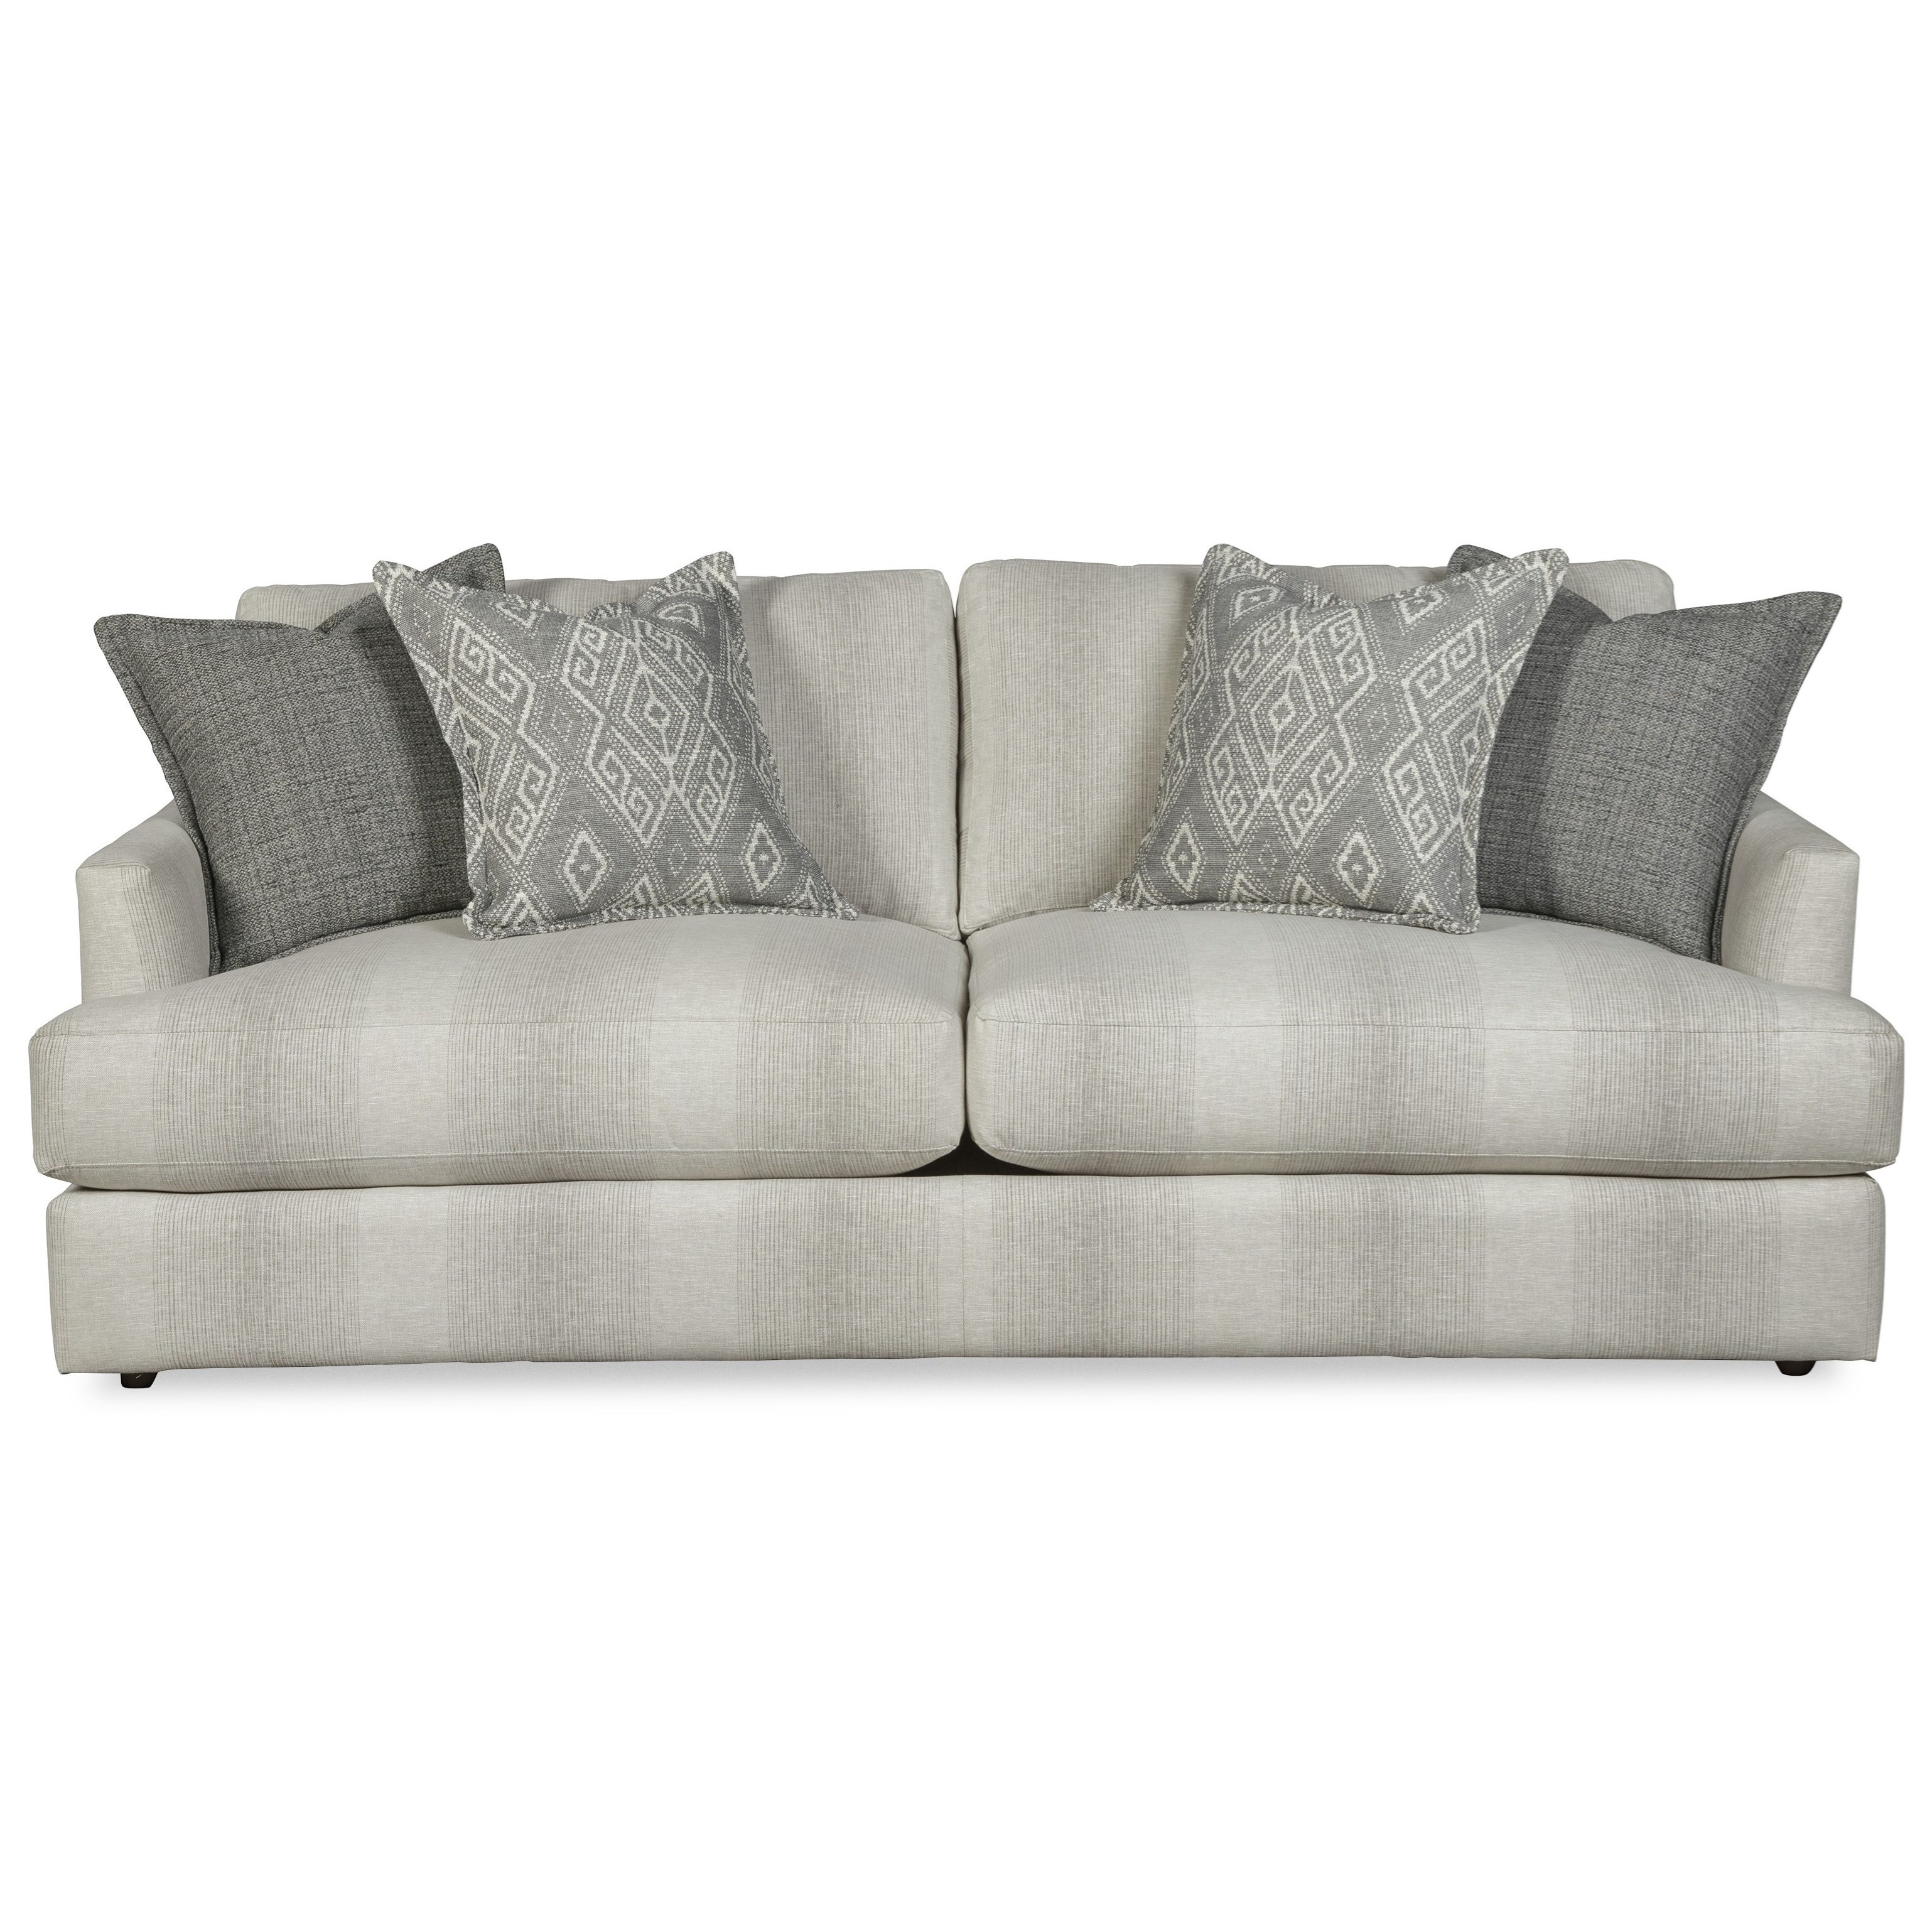 700150BD Sofa by Craftmaster at Esprit Decor Home Furnishings